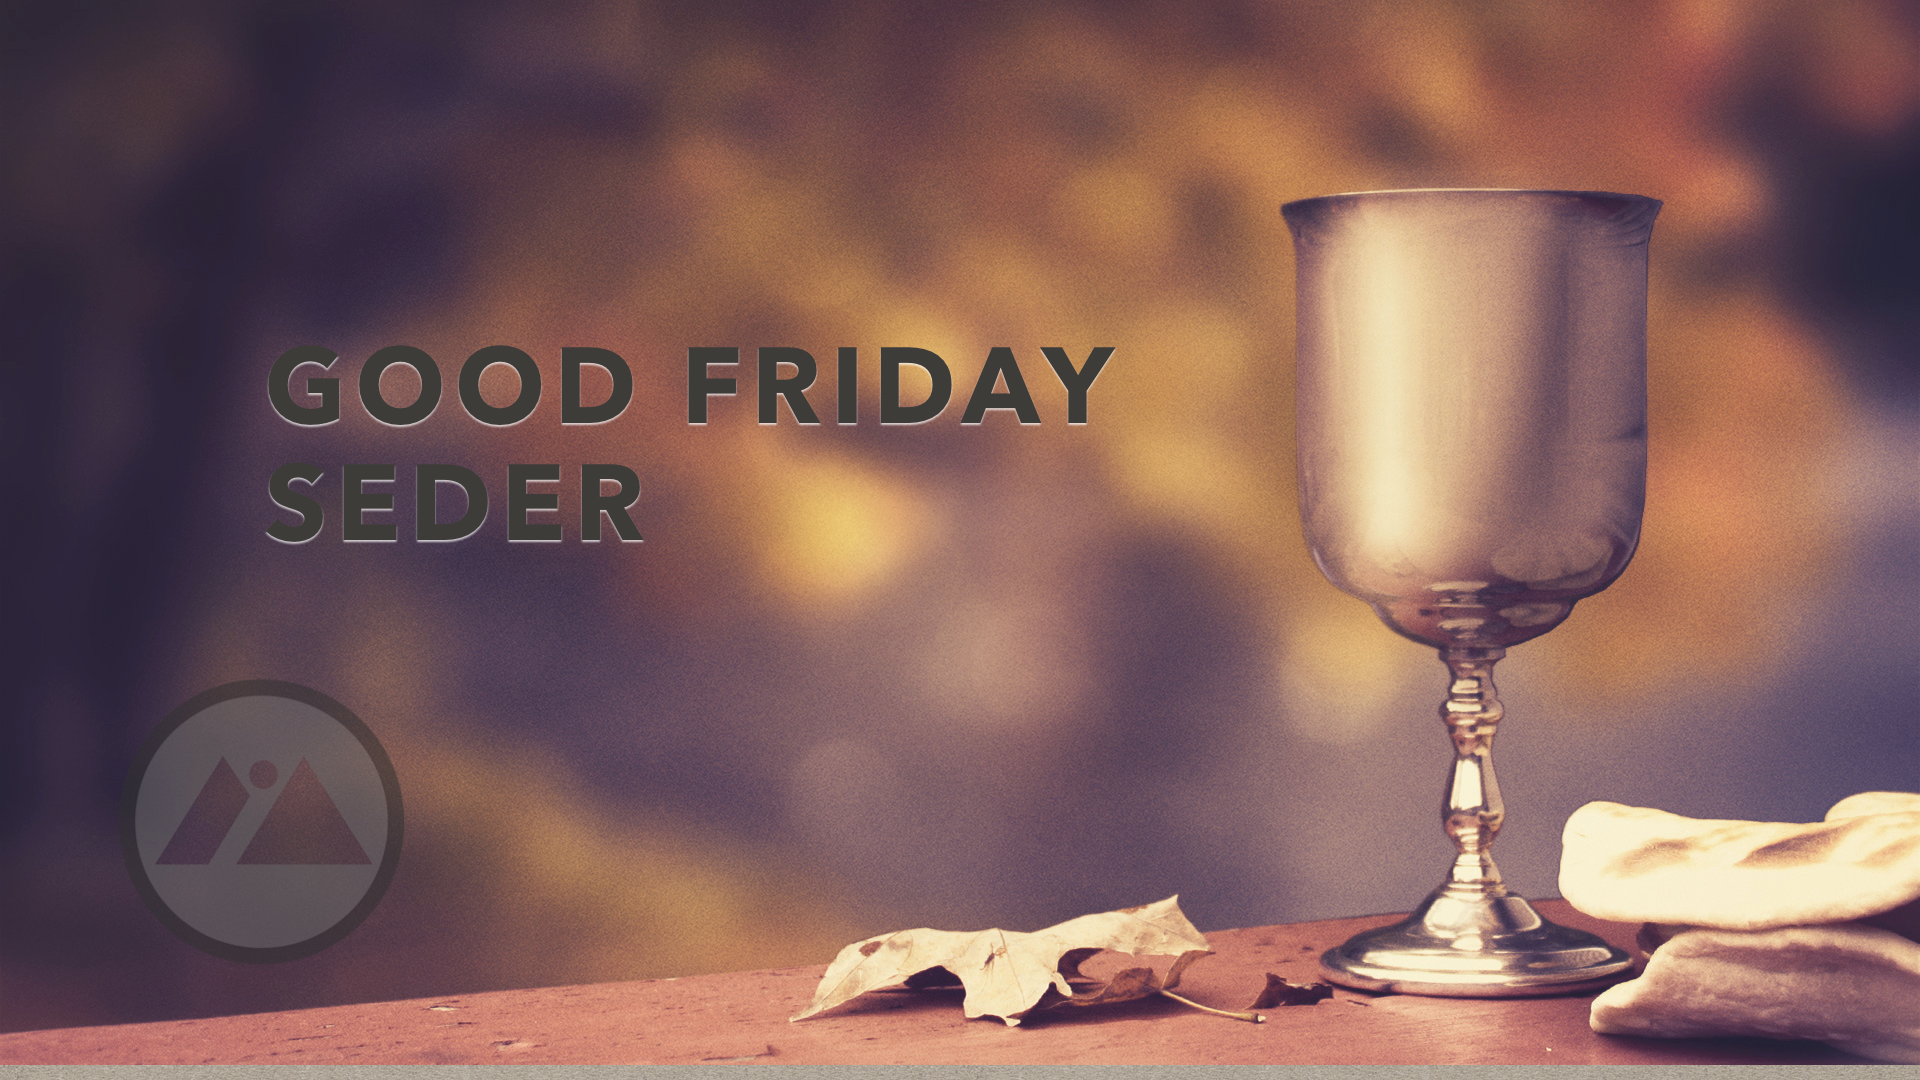 Promo - Good Friday Seder.jpg